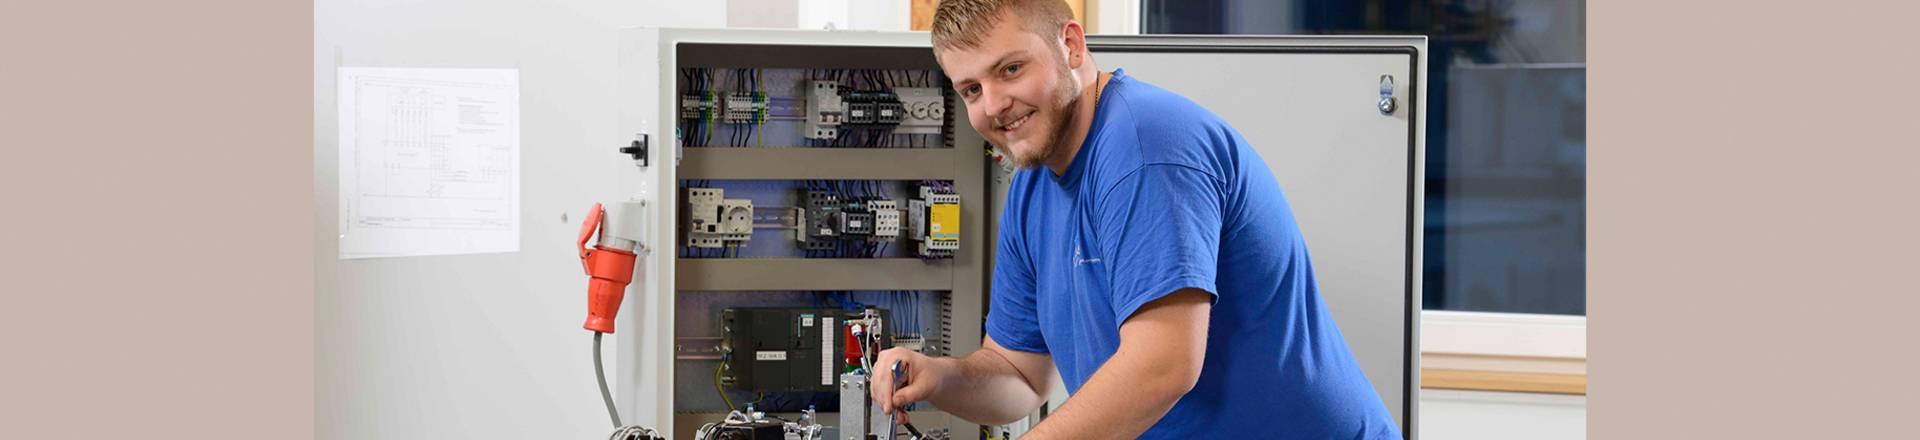 We are looking for a Mechatronics Technician, apply now